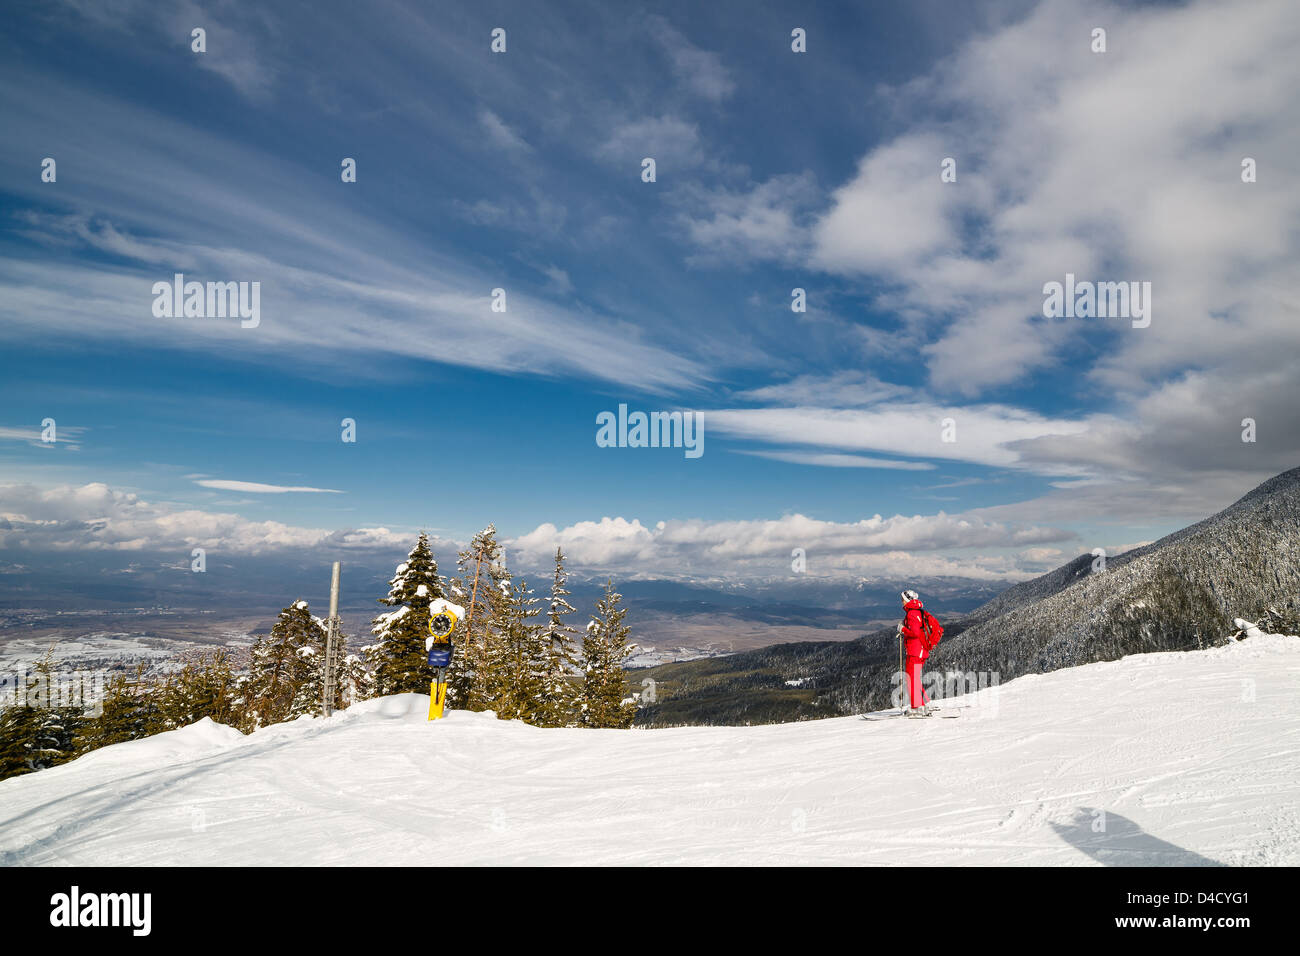 Downhill skiing in sunny frosty winter day - Stock Image